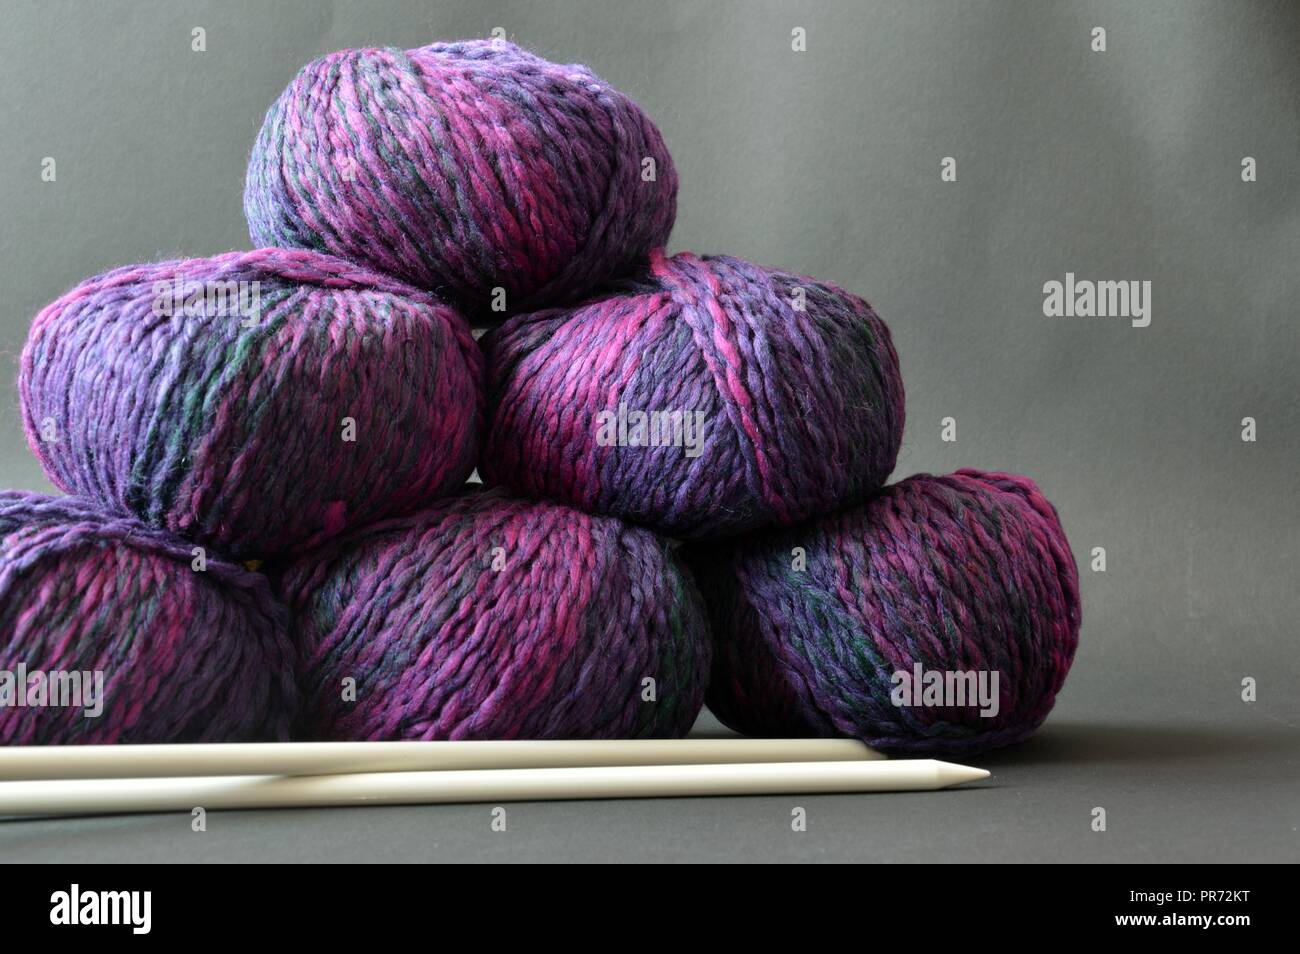 winter hobby, wool balls ready to be knitted - Stock Image